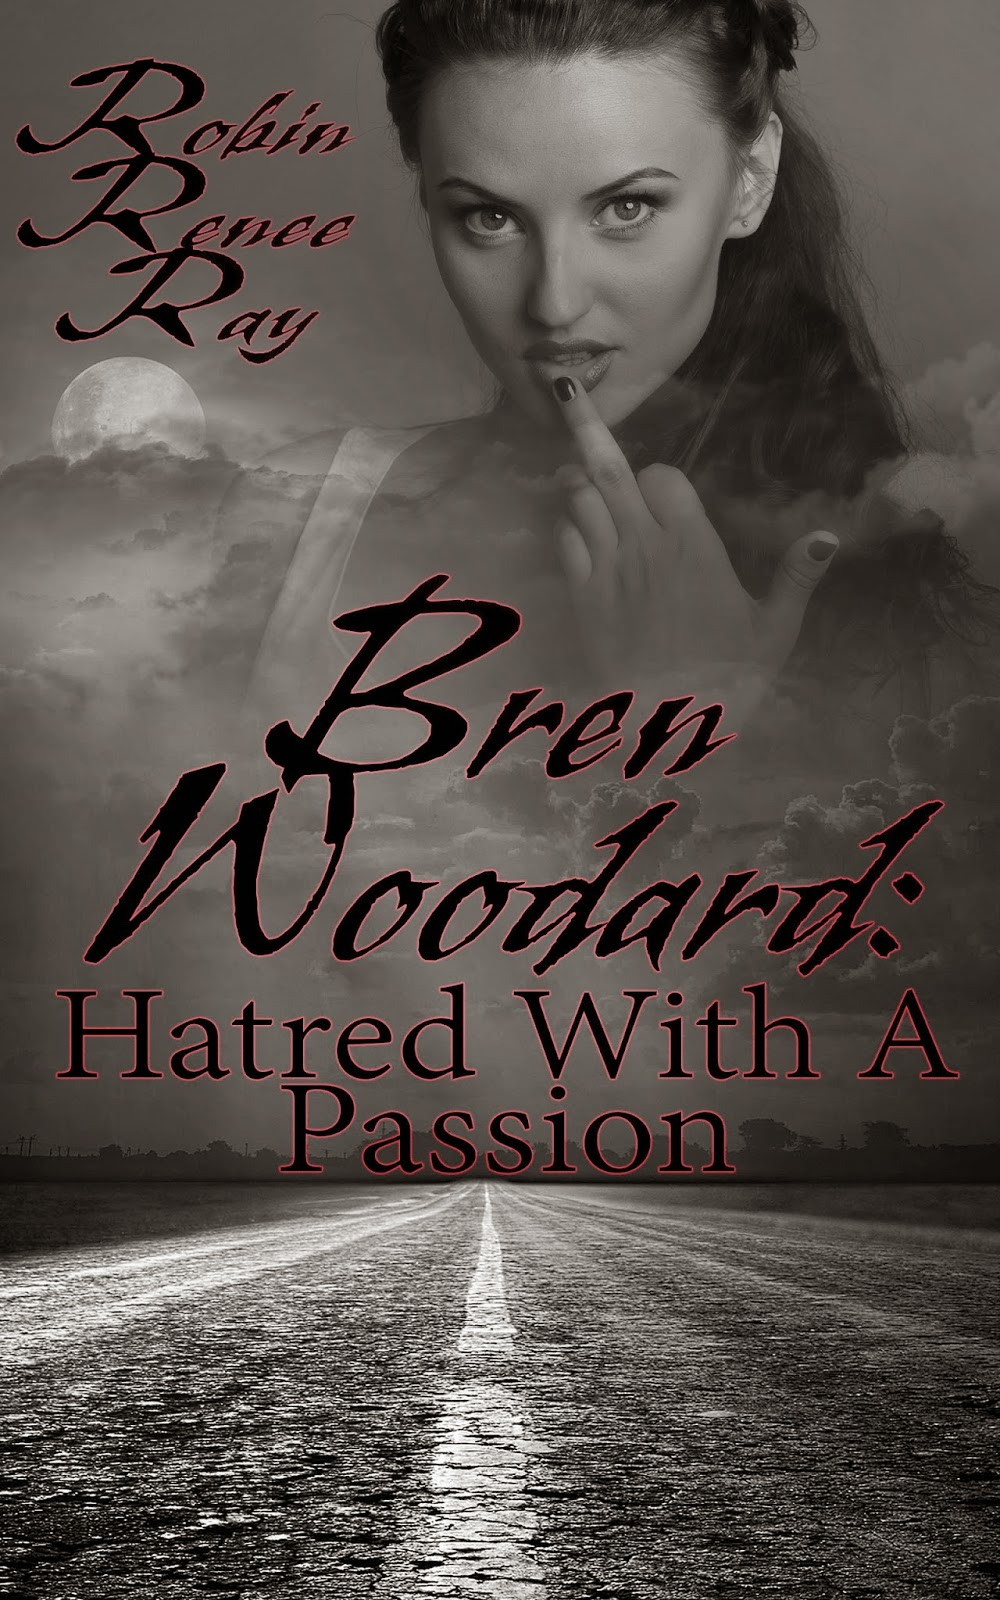 http://www.amazon.com/Bren-Woodard-Robin-Renee-Ray-ebook/dp/B00SSLG1C4/ref=sr_1_5?s=books&ie=UTF8&qid=1422824679&sr=1-5